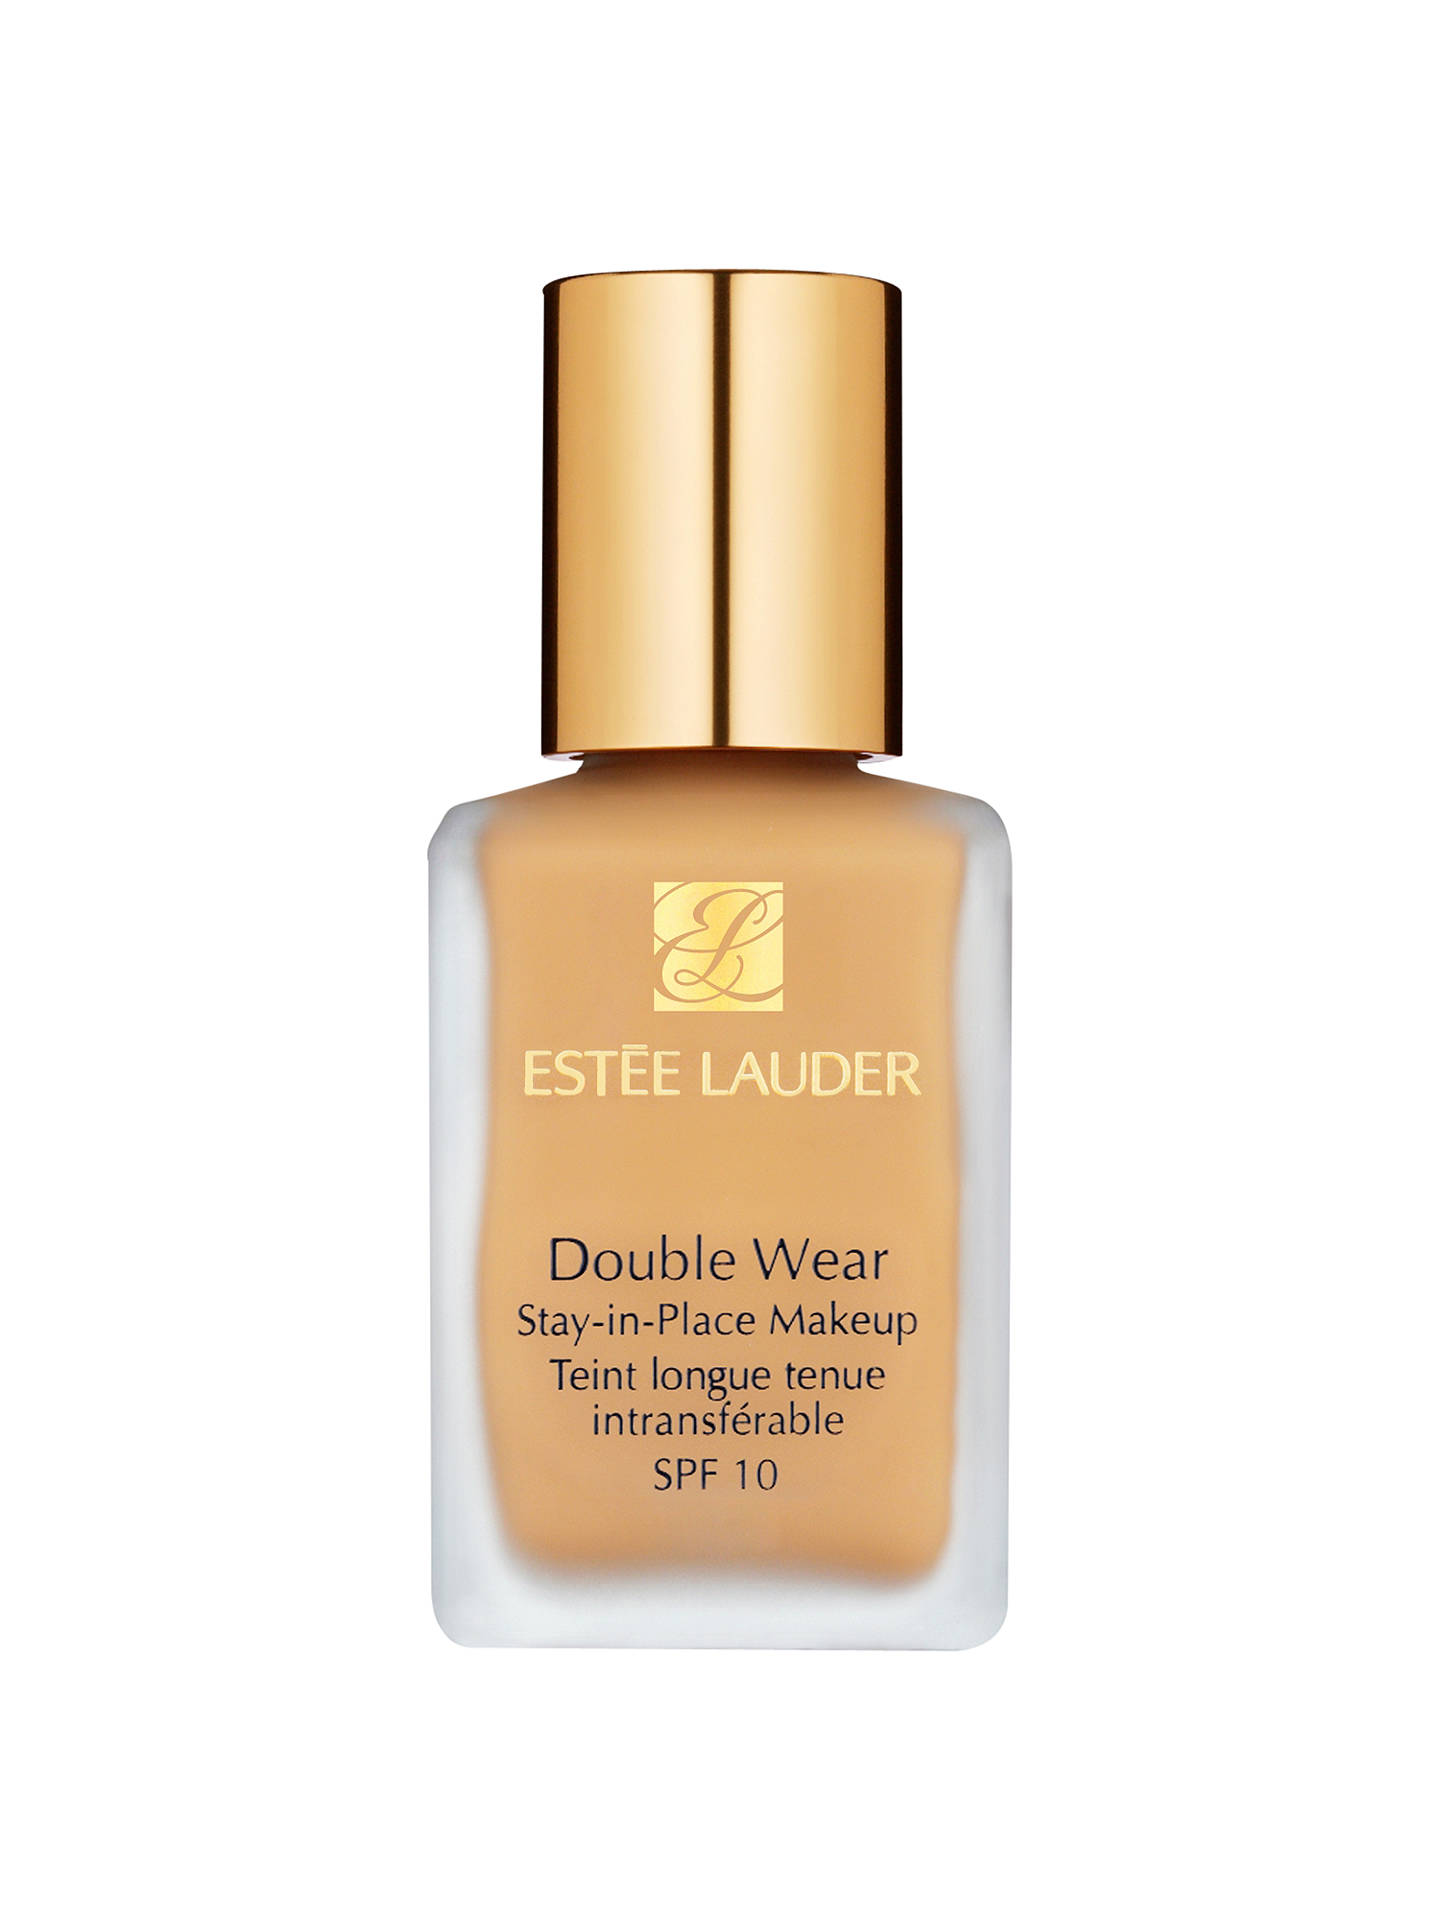 Estée Lauder Double Wear Stay In Place Foundation Makeup Spf10, 6 W1 Sandalwood by Estée Lauder